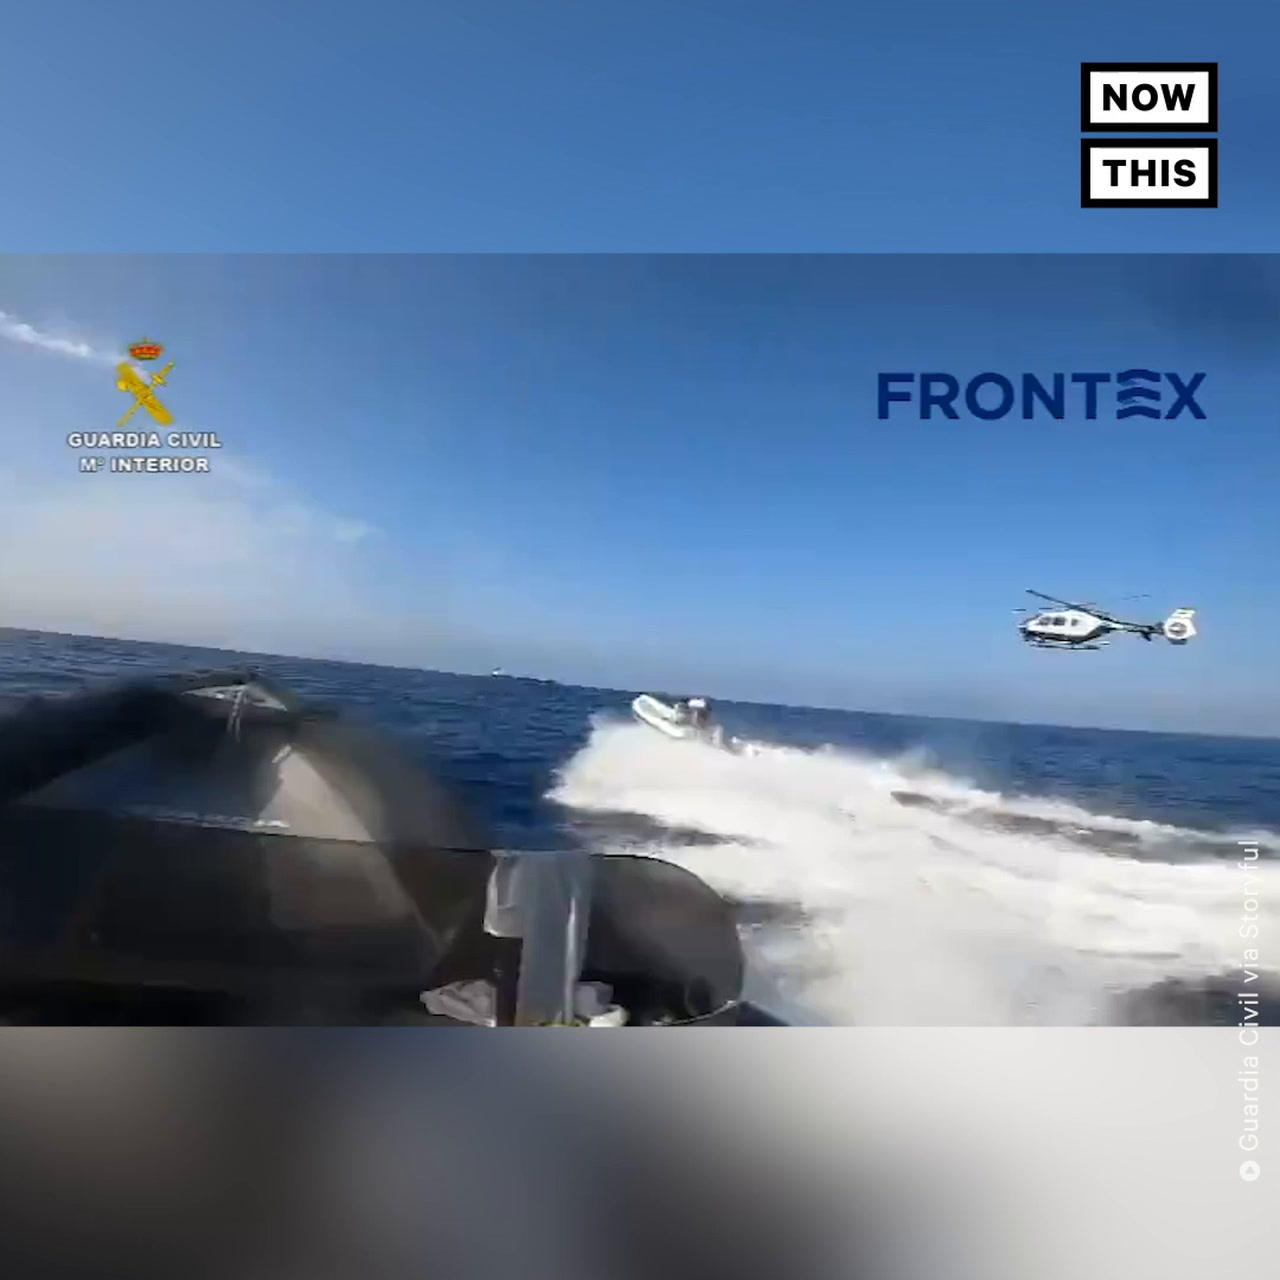 3 Suspects Fall Overboard During High-Speed Boat Chase